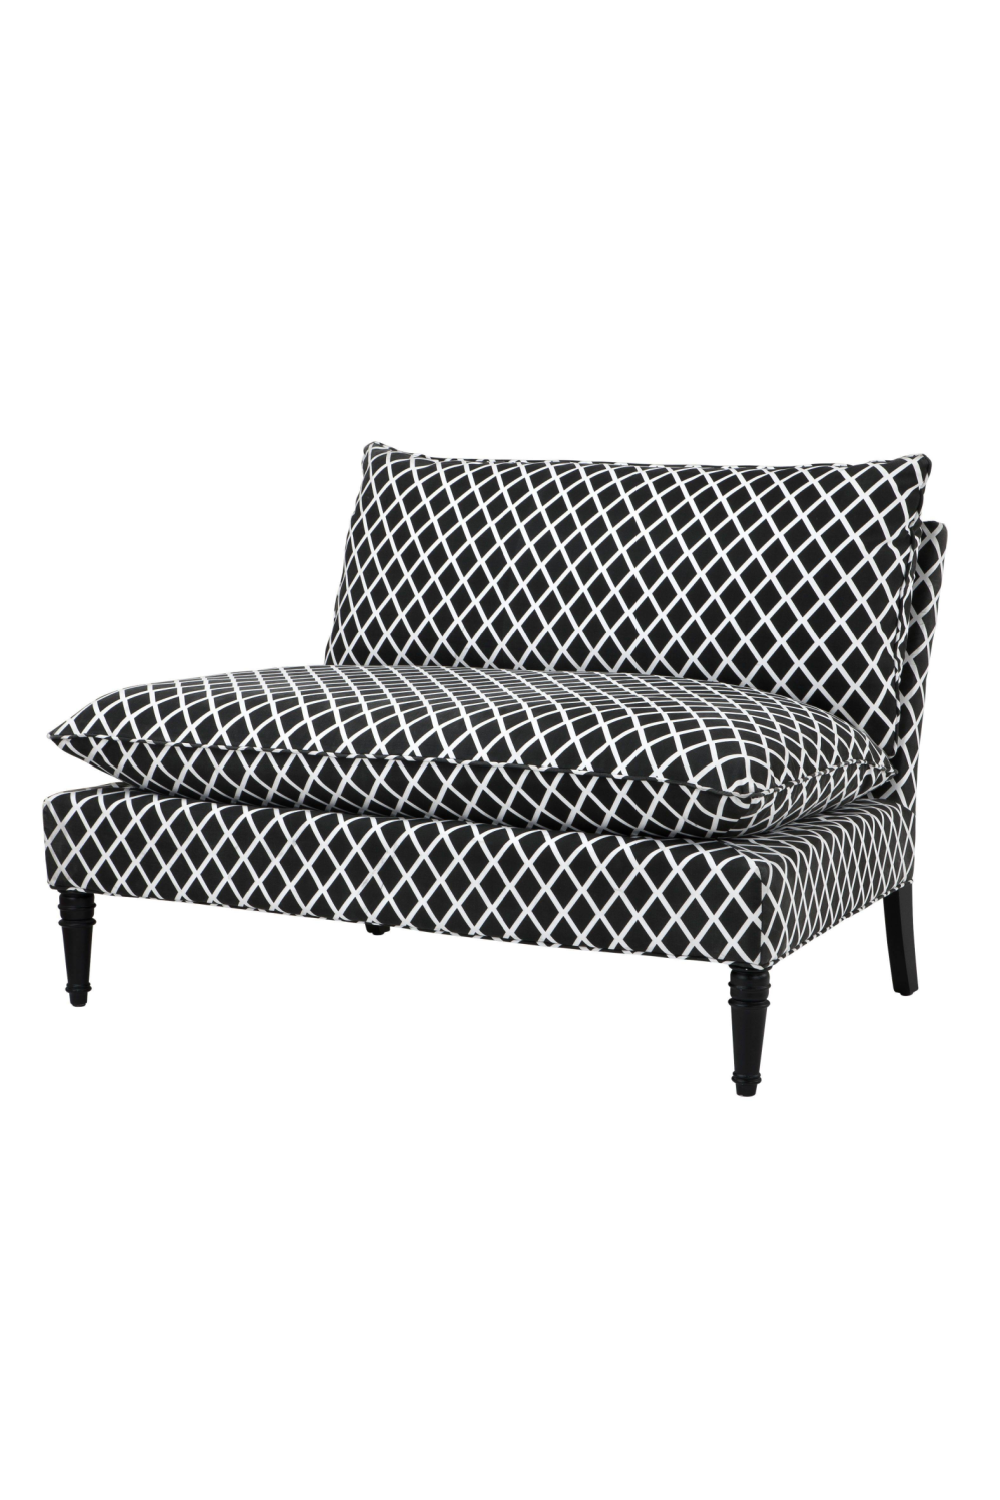 Diamond Sofa | Eichholtz Maxwell | Woodfurniture.com